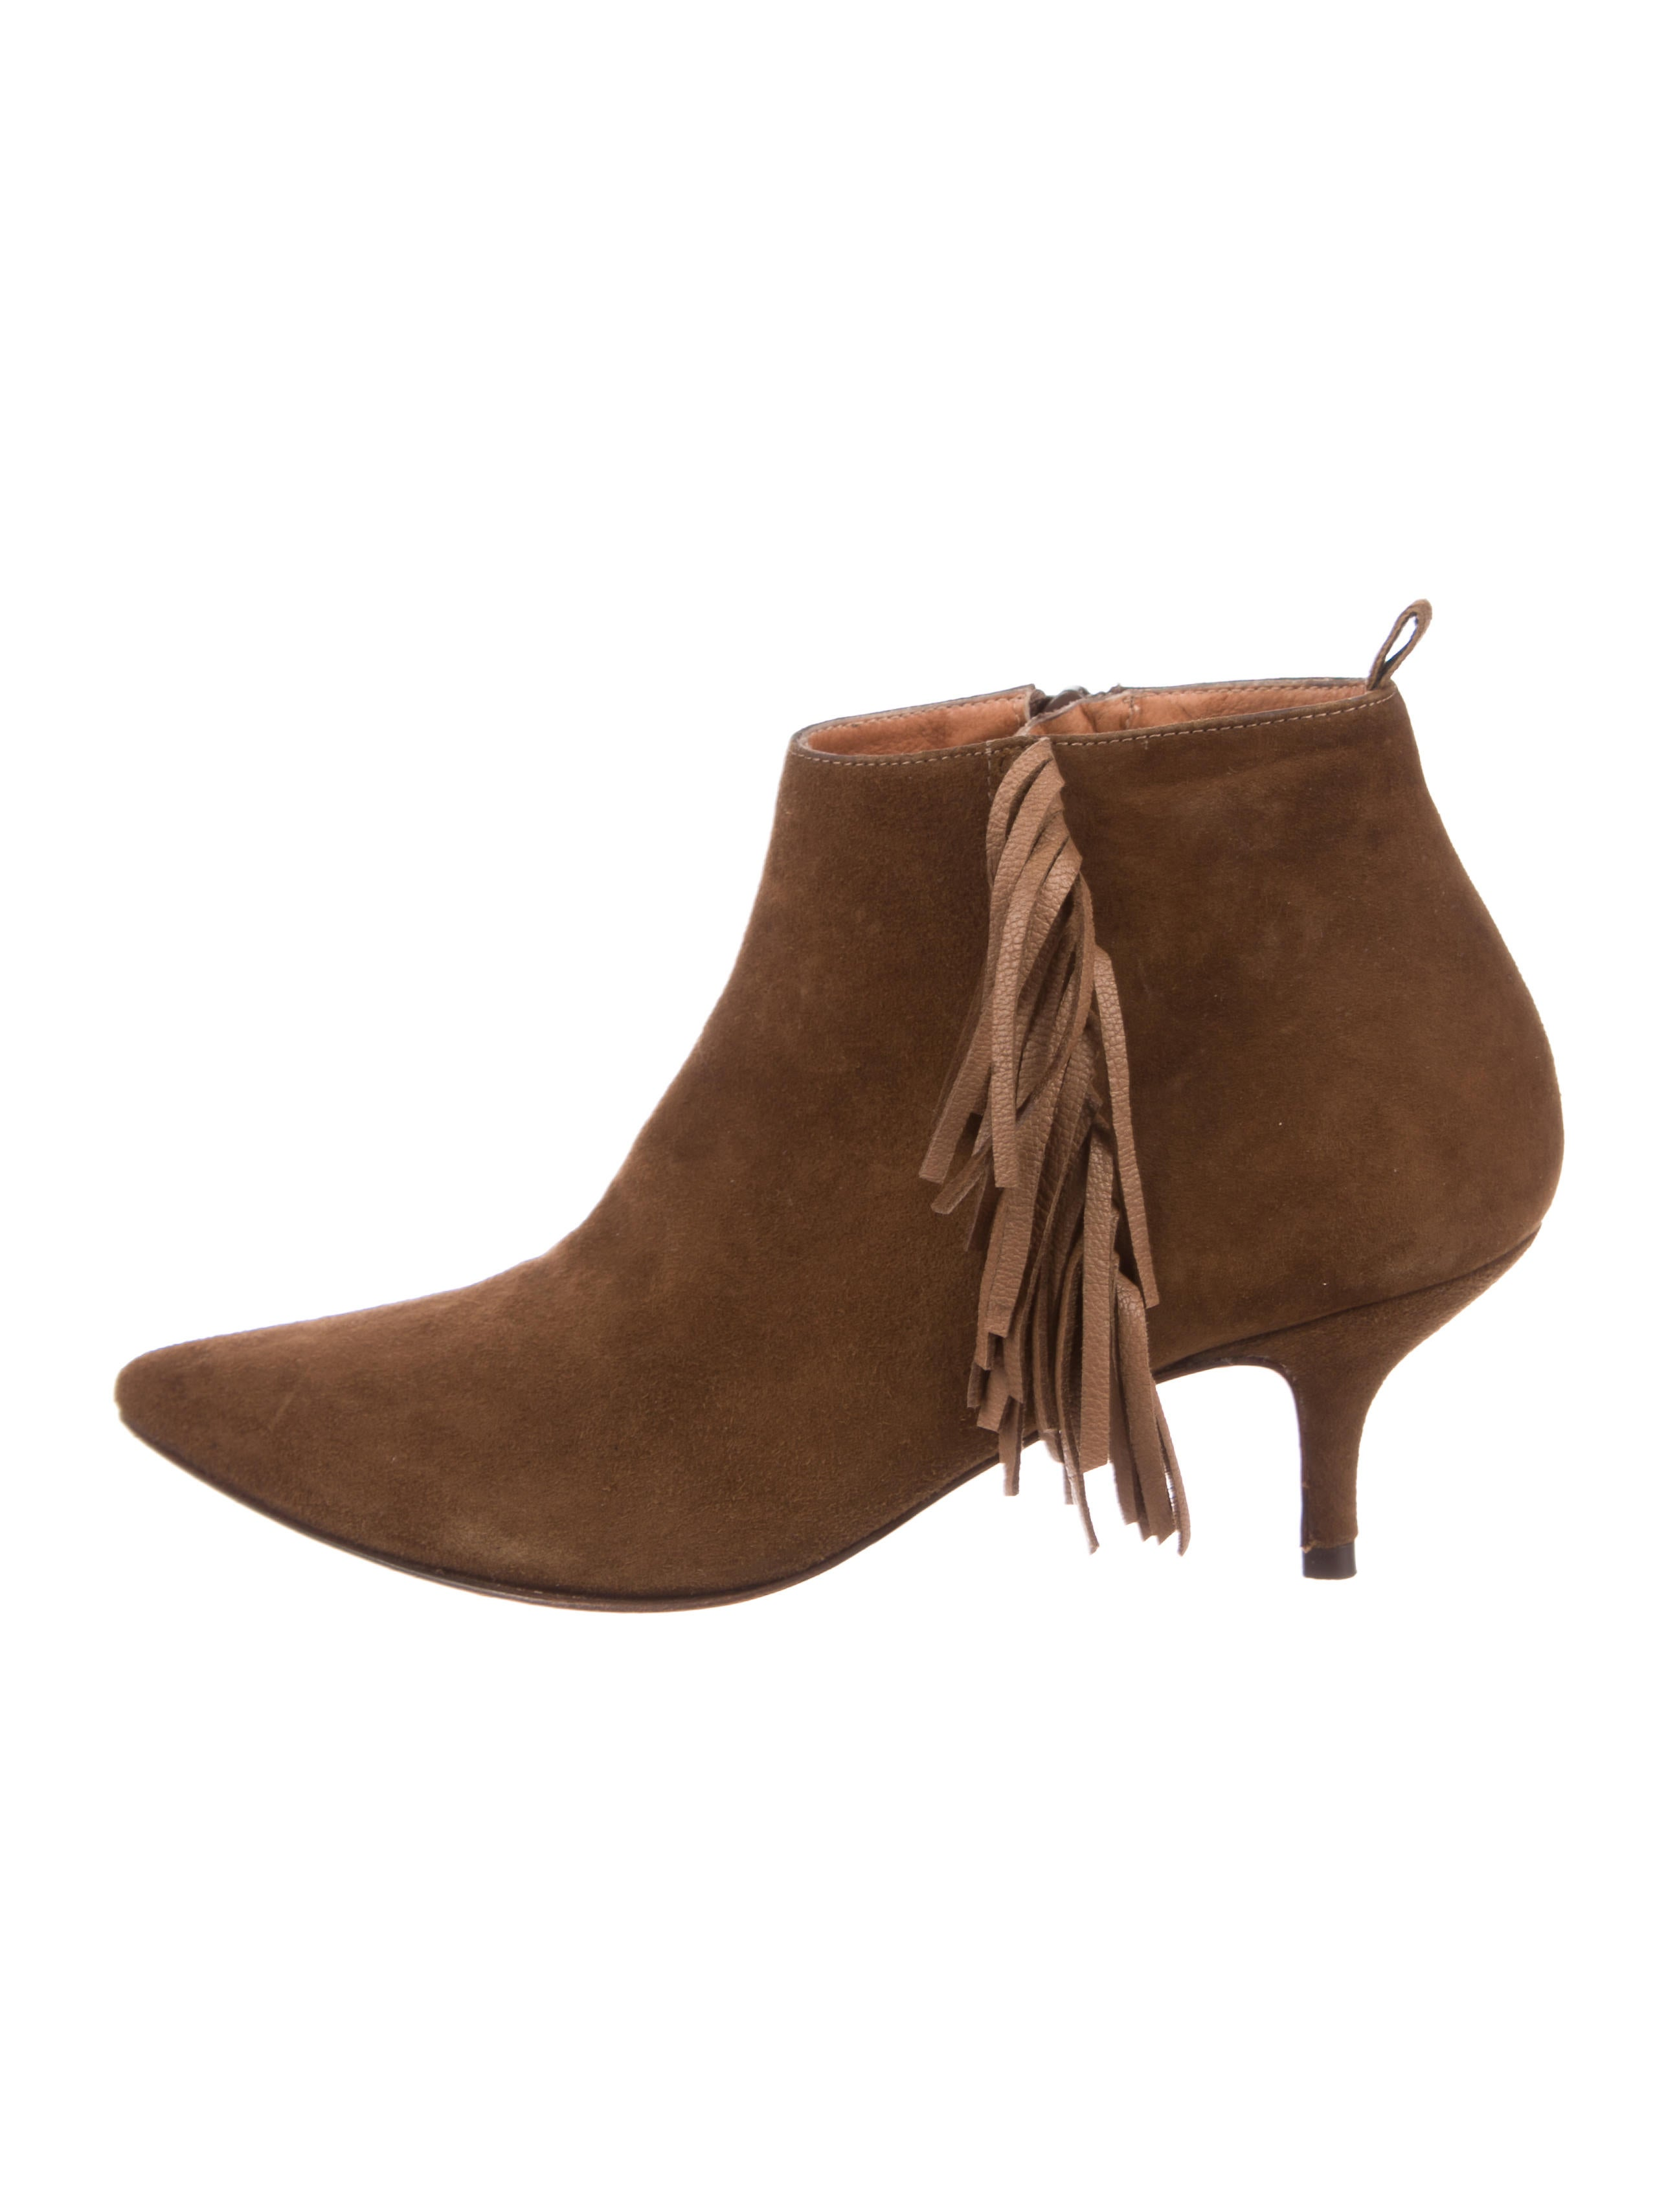 Vanessa Bruno Suede Fringe Booties perfect cheap price free shipping comfortable joUPiq4